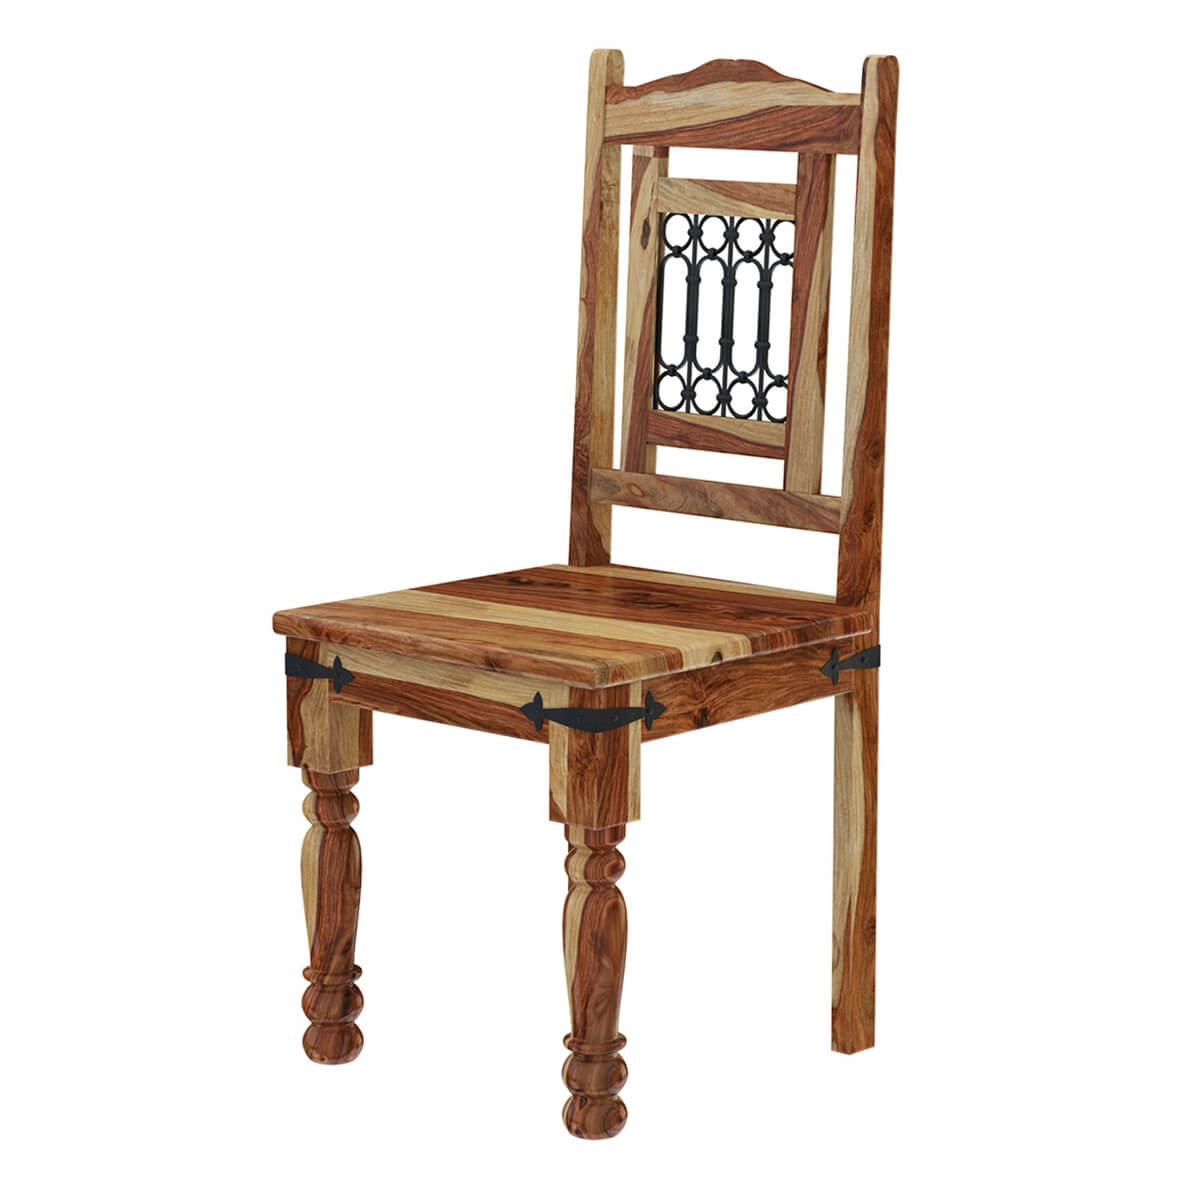 Rustic Wood Chairs Vandana Solid Wood And Wrought Iron Rustic Kitchen Dining Chair